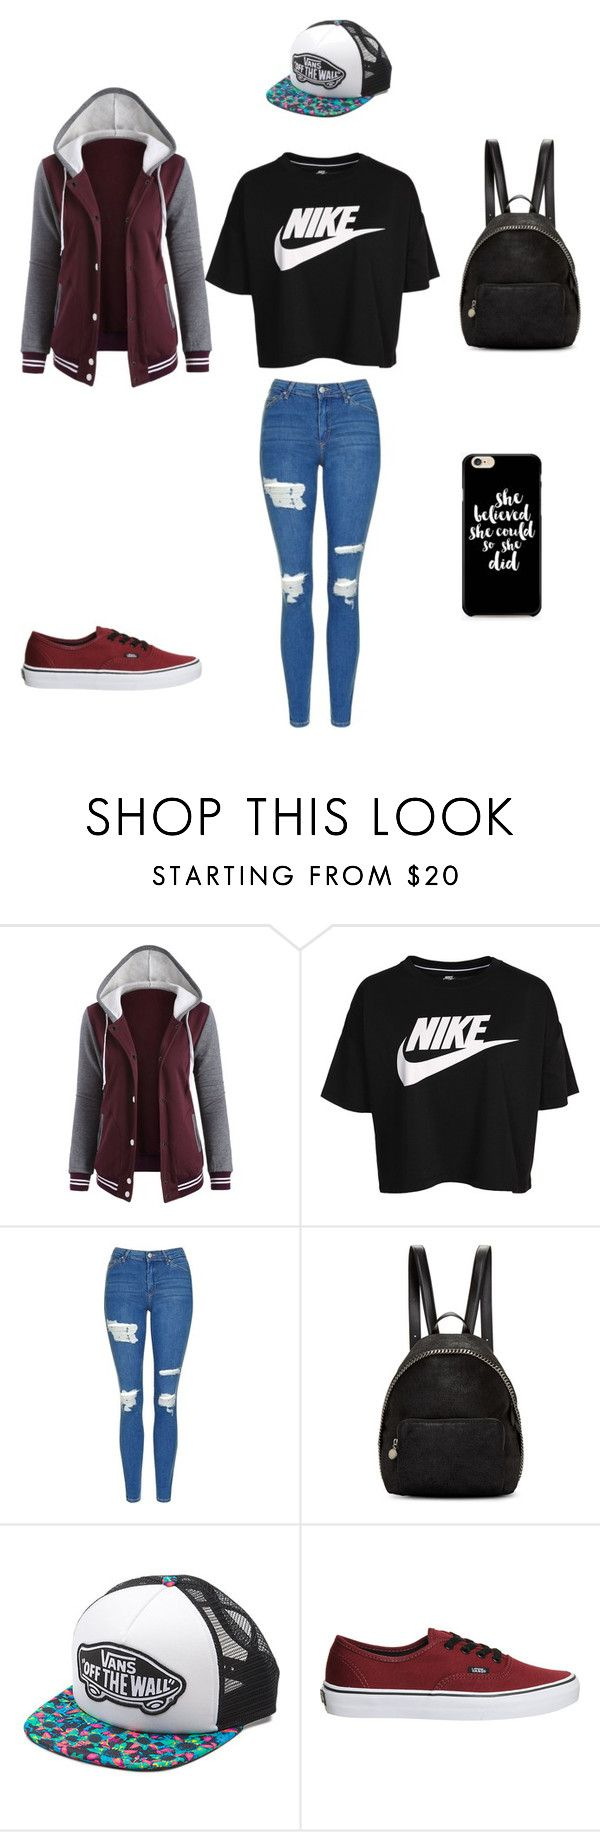 """Untitled #26"" by moriartylauren on Polyvore featuring NIKE, Topshop, STELLA McCARTNEY and Vans"